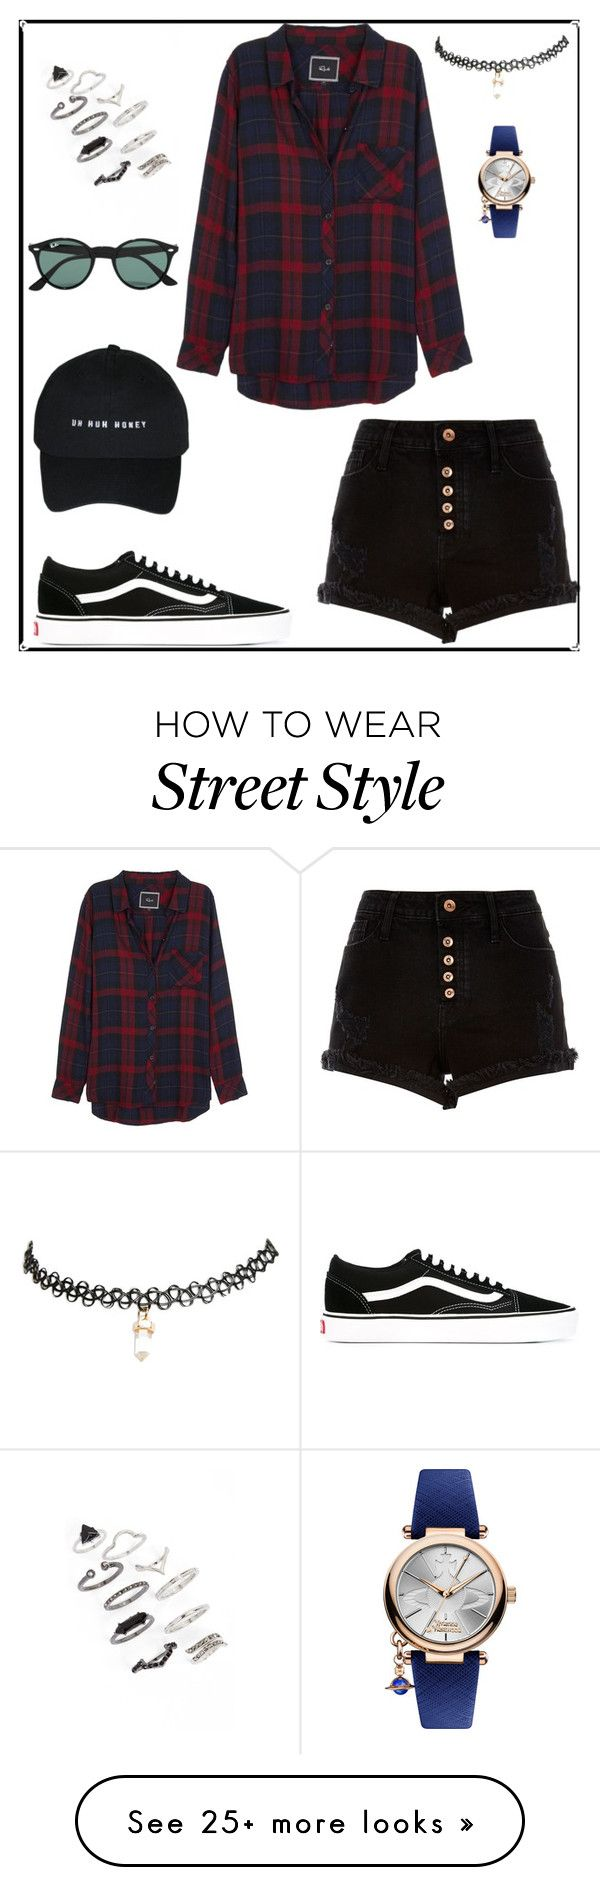 """""""street style"""" by zoelou93 on Polyvore featuring Topshop, Rails, Vans, Wet Seal, Vivienne Westwood, Ray-Ban and River Island"""